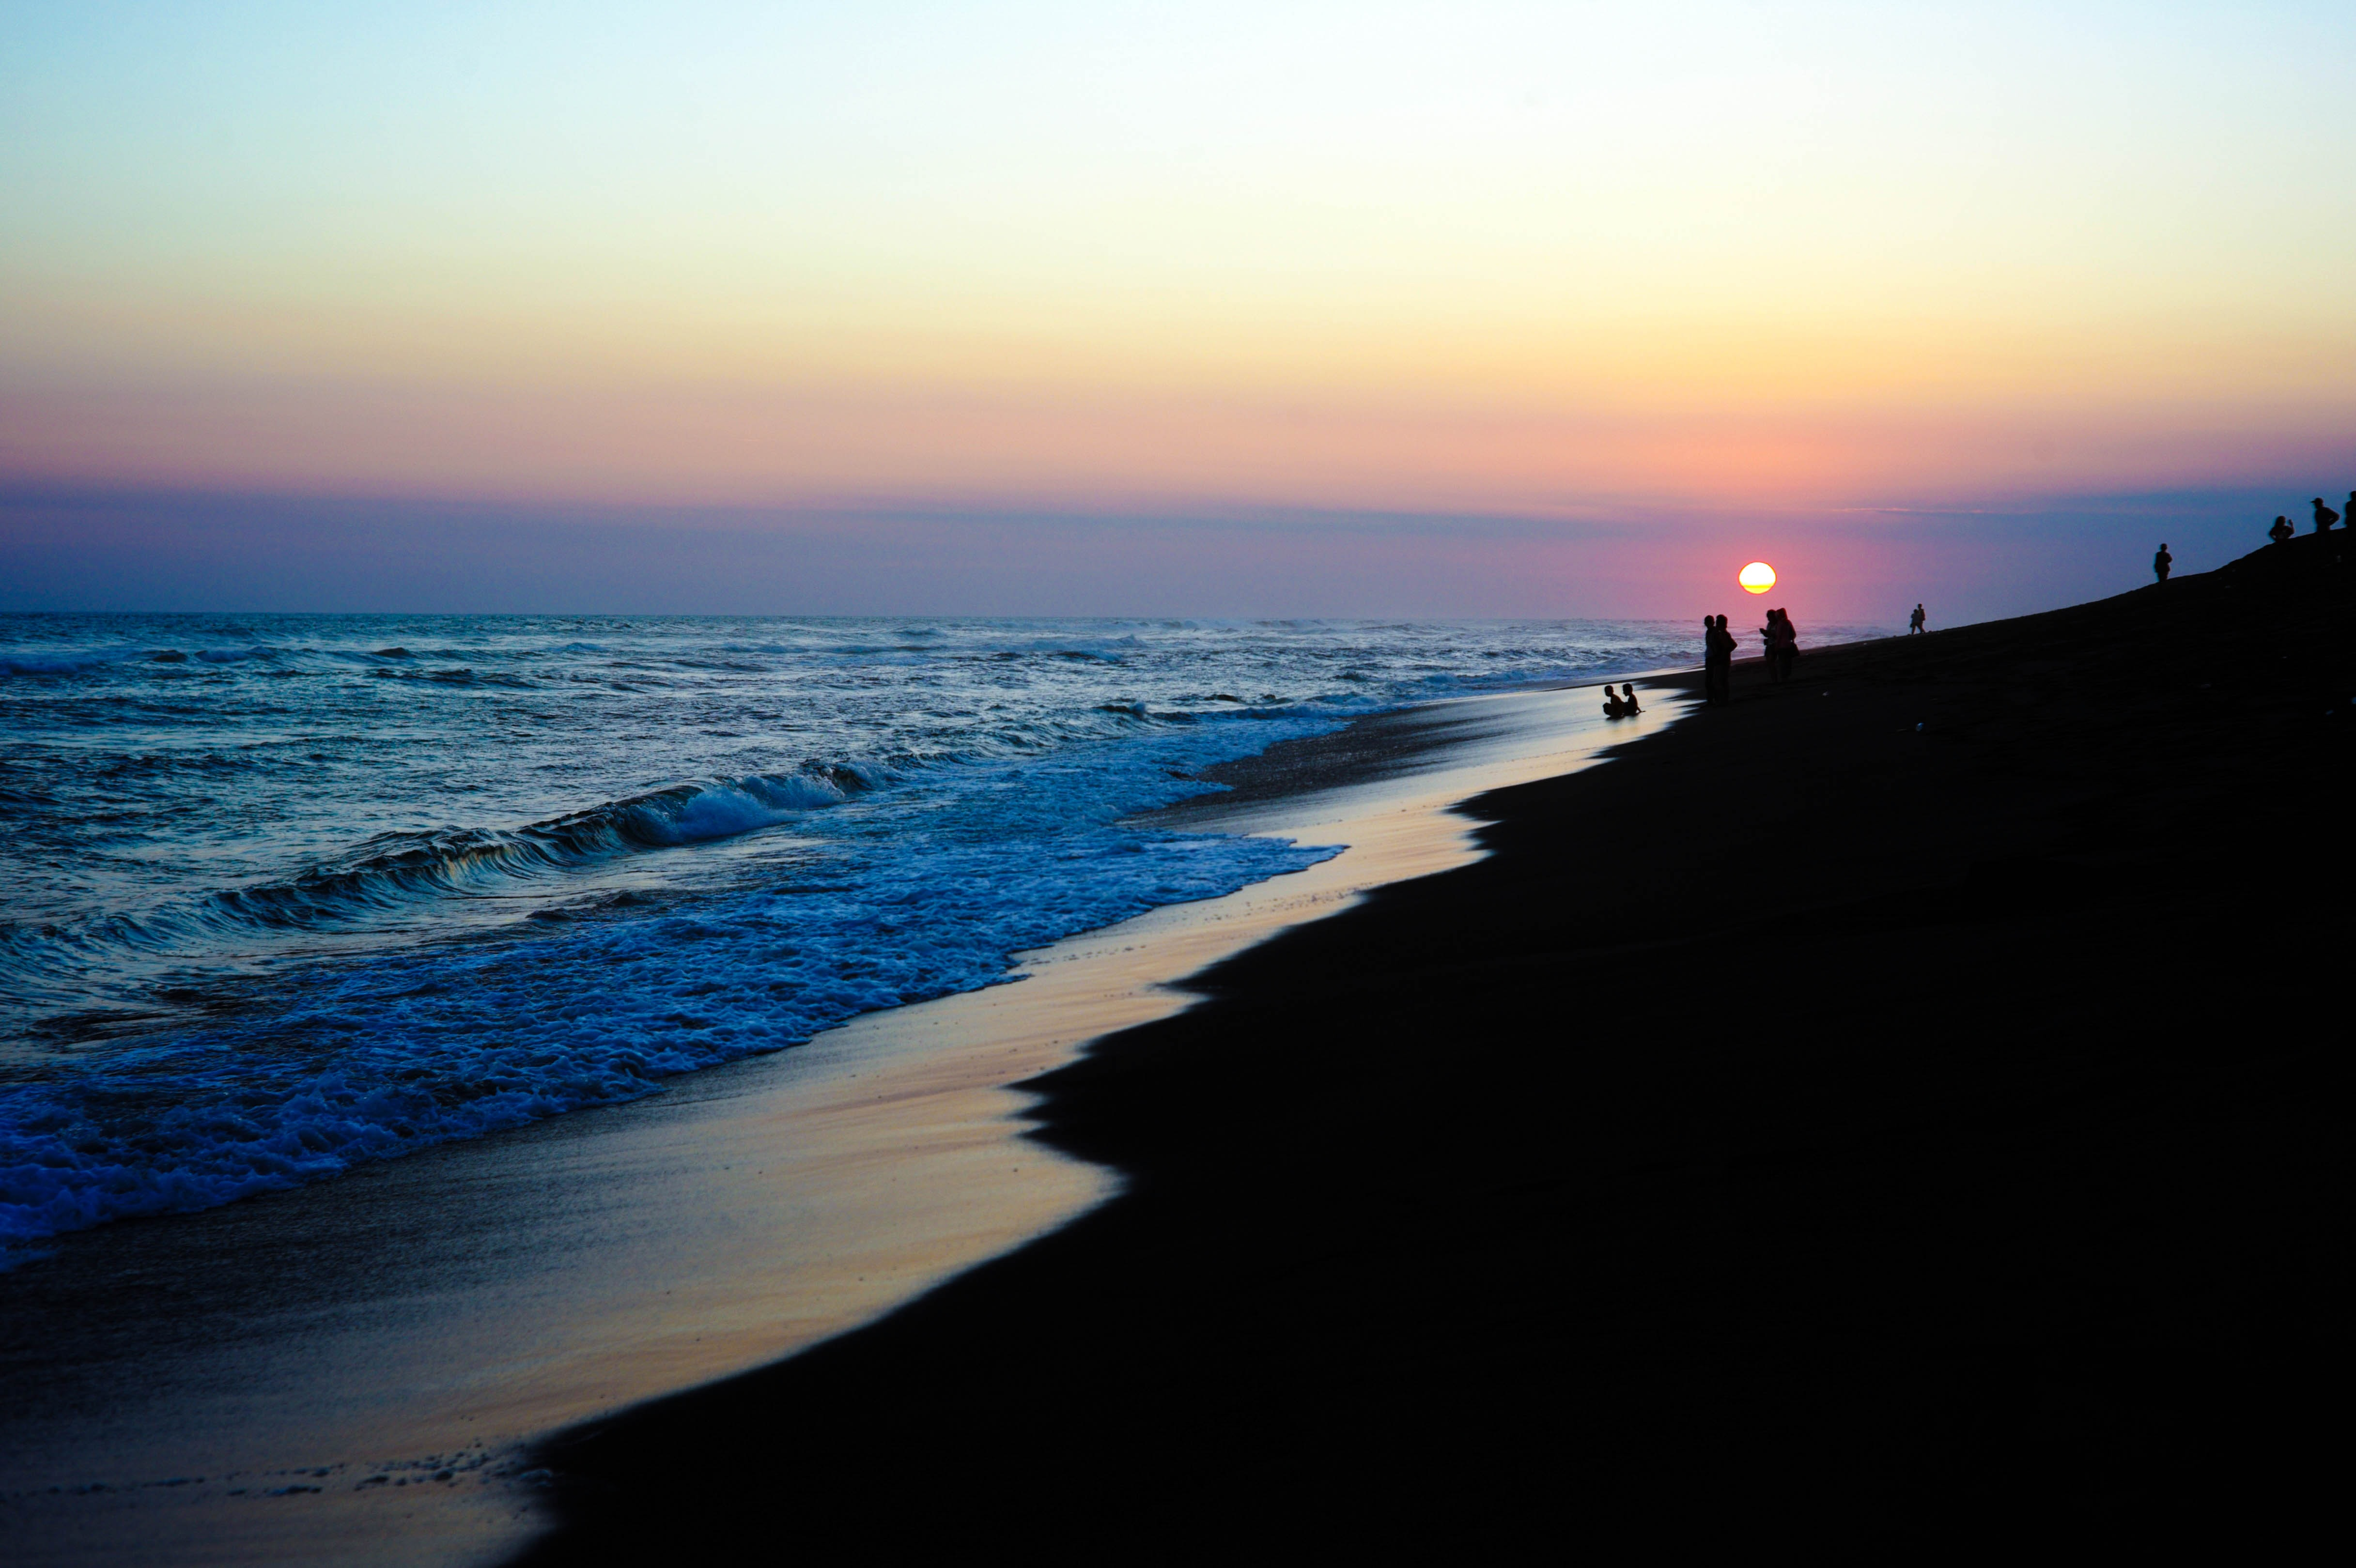 photography of silhouette of people on seashore